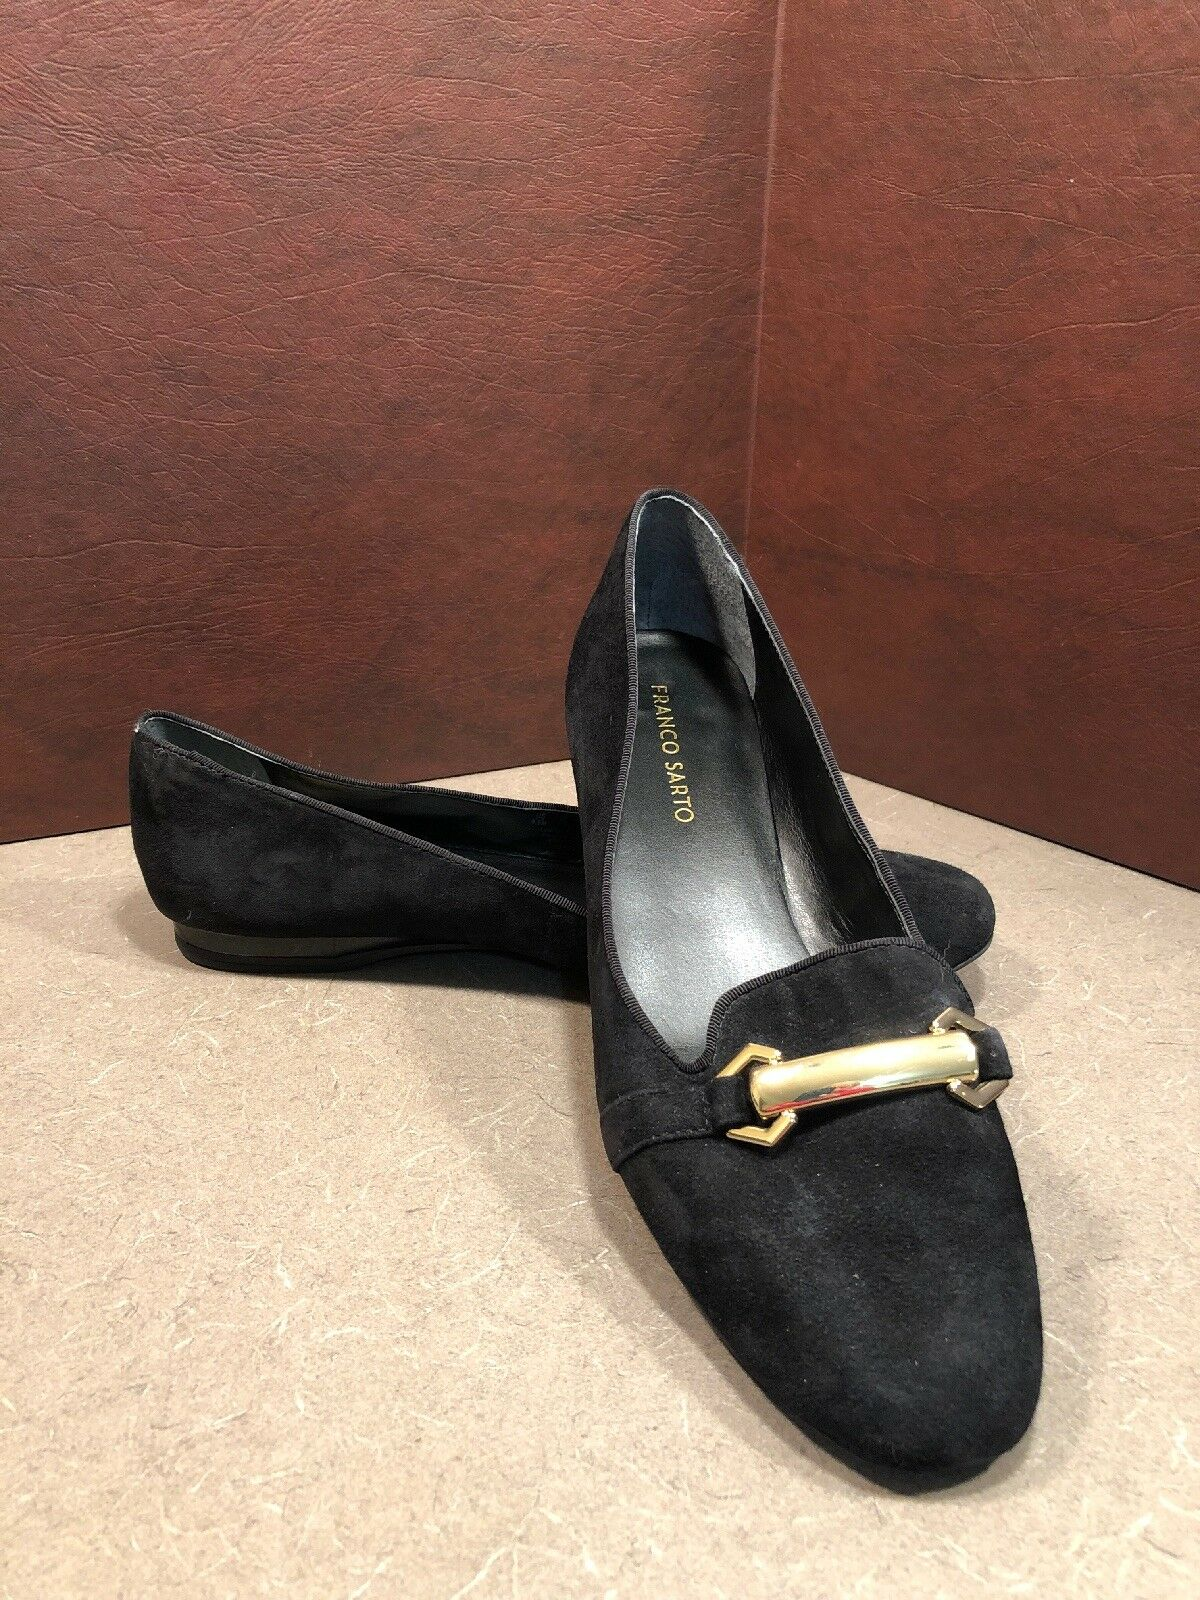 FRANCO SARTO Leather Slip On loafer Flats SZ 9.5 M Gerry 6 Black EUC